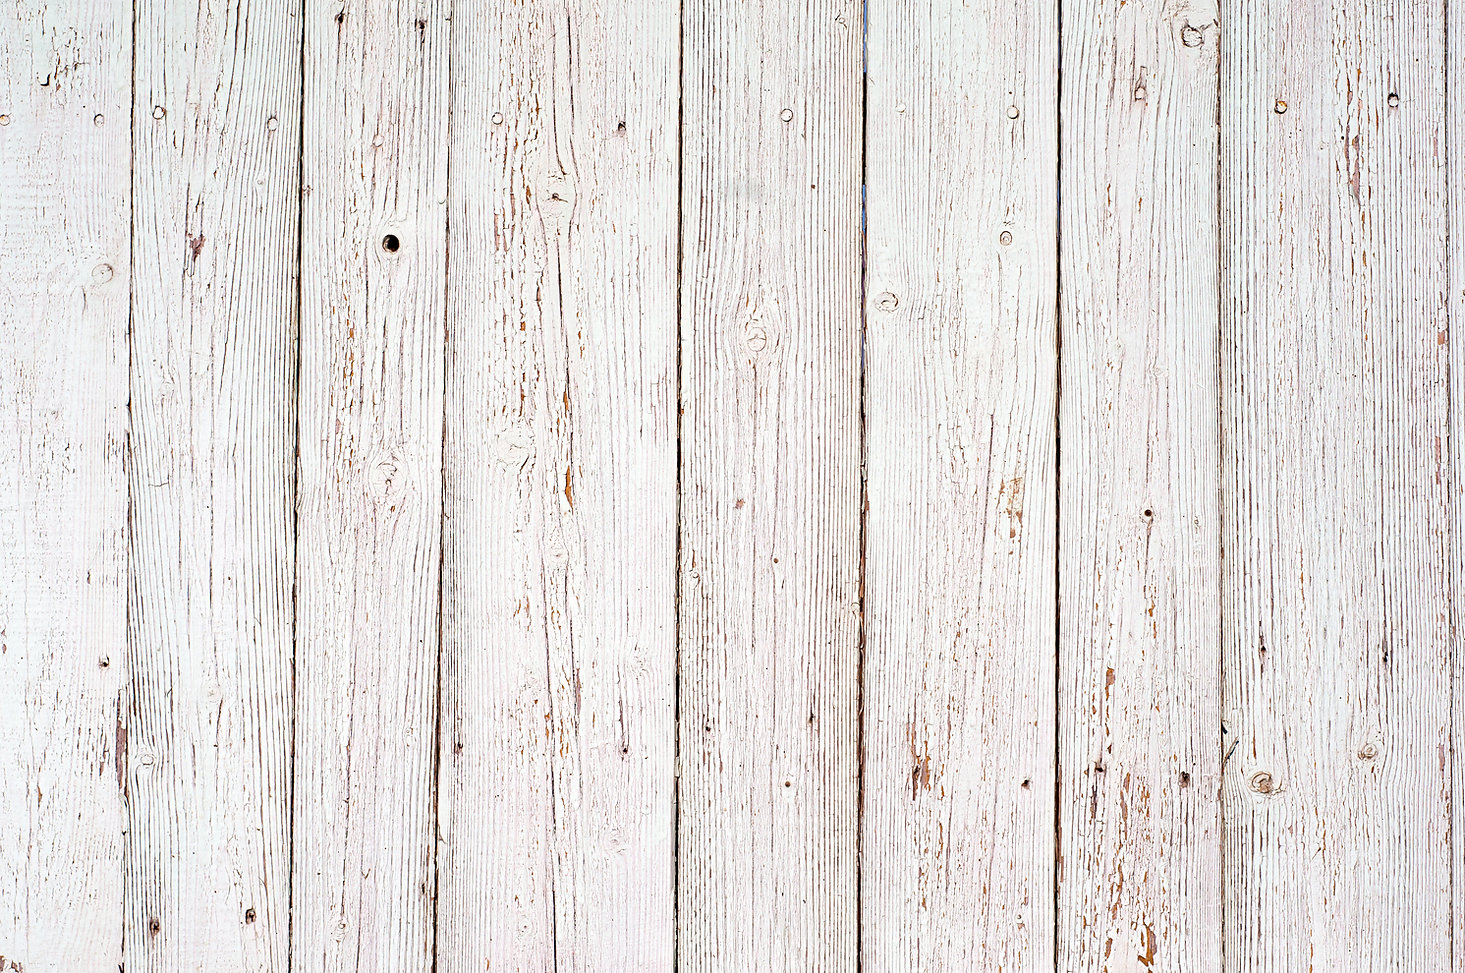 White Wood Texture Background.jpg